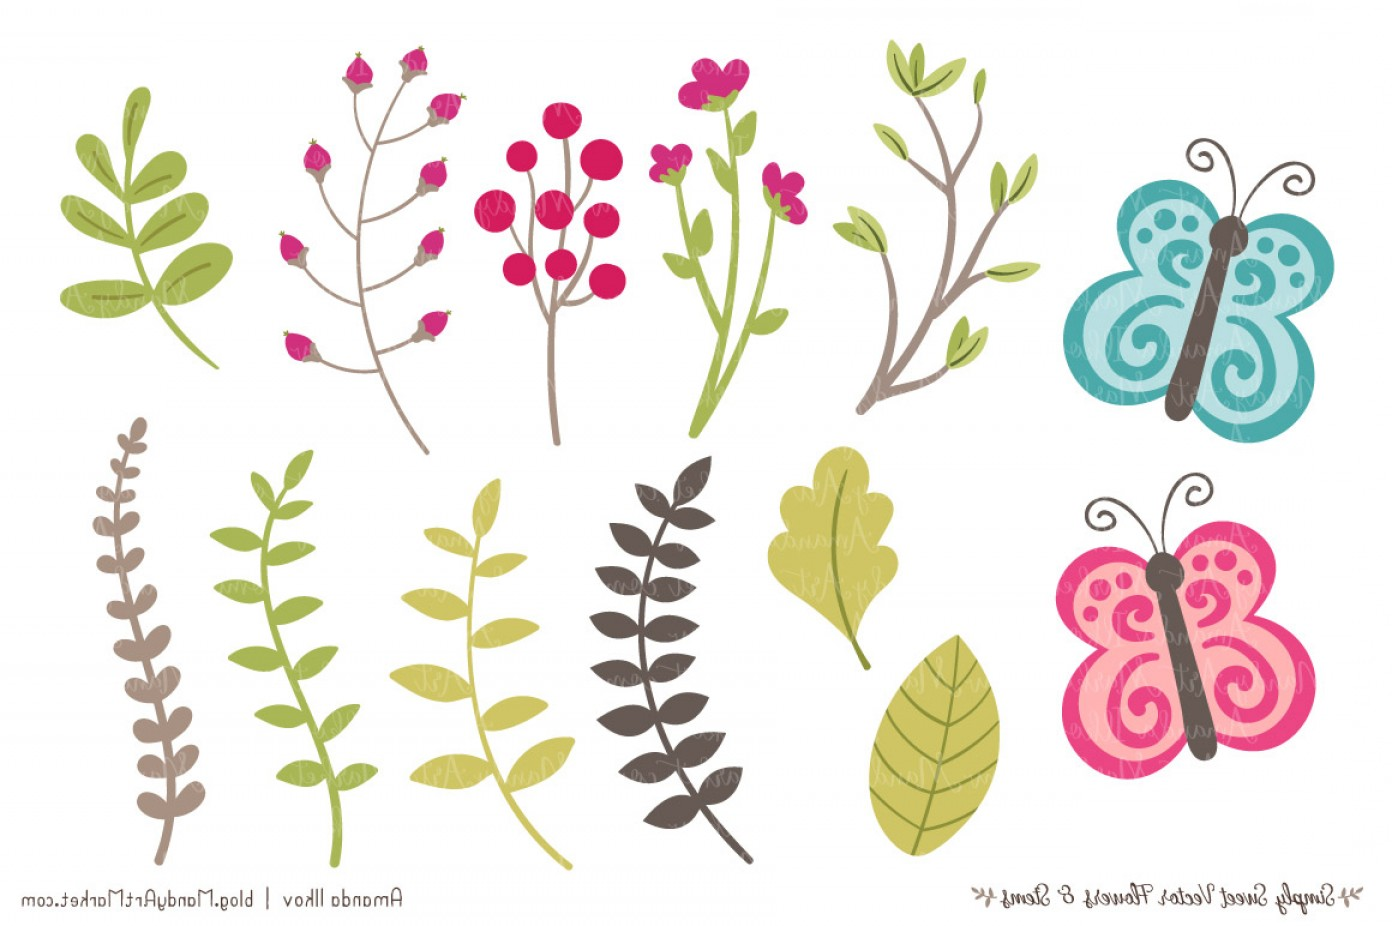 Bohemian Flowers Vector: Simply Sweet Vector Flowers And Stems Clipart In Bohemian